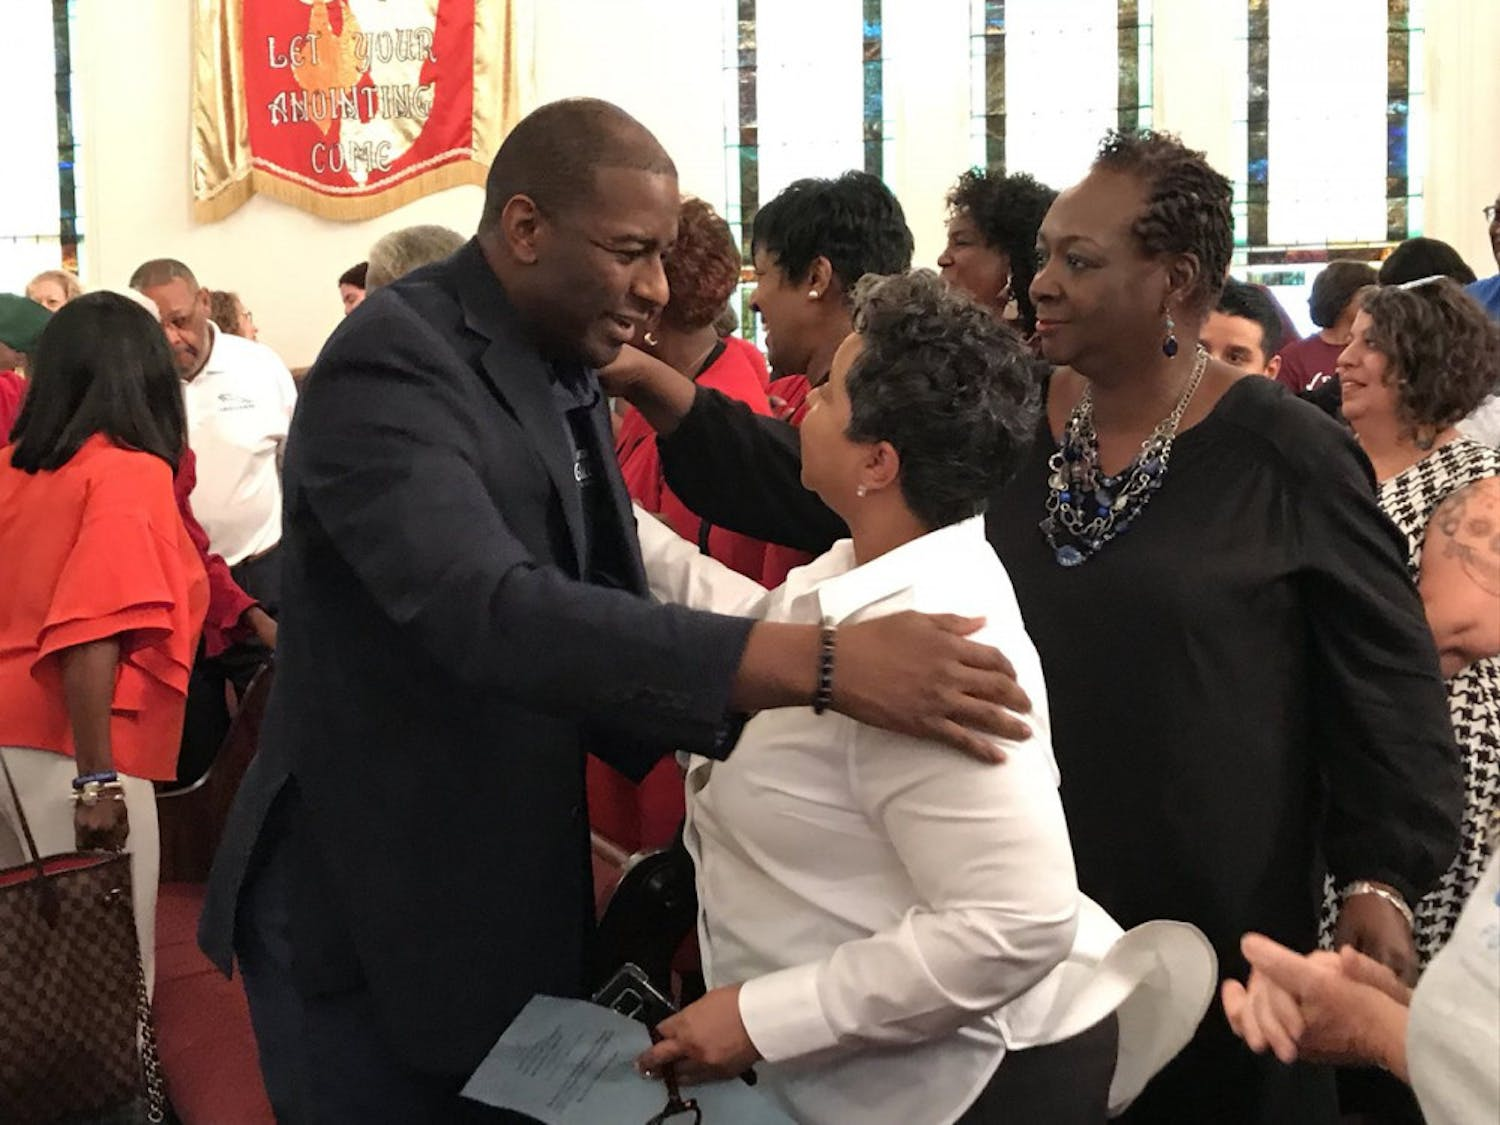 Andrew Gillum, a Florida governmental candidate, stopped in his hometown of Gainesville Monday at Mt. Pleasant United Methodist Church to meet and talk with supporters.